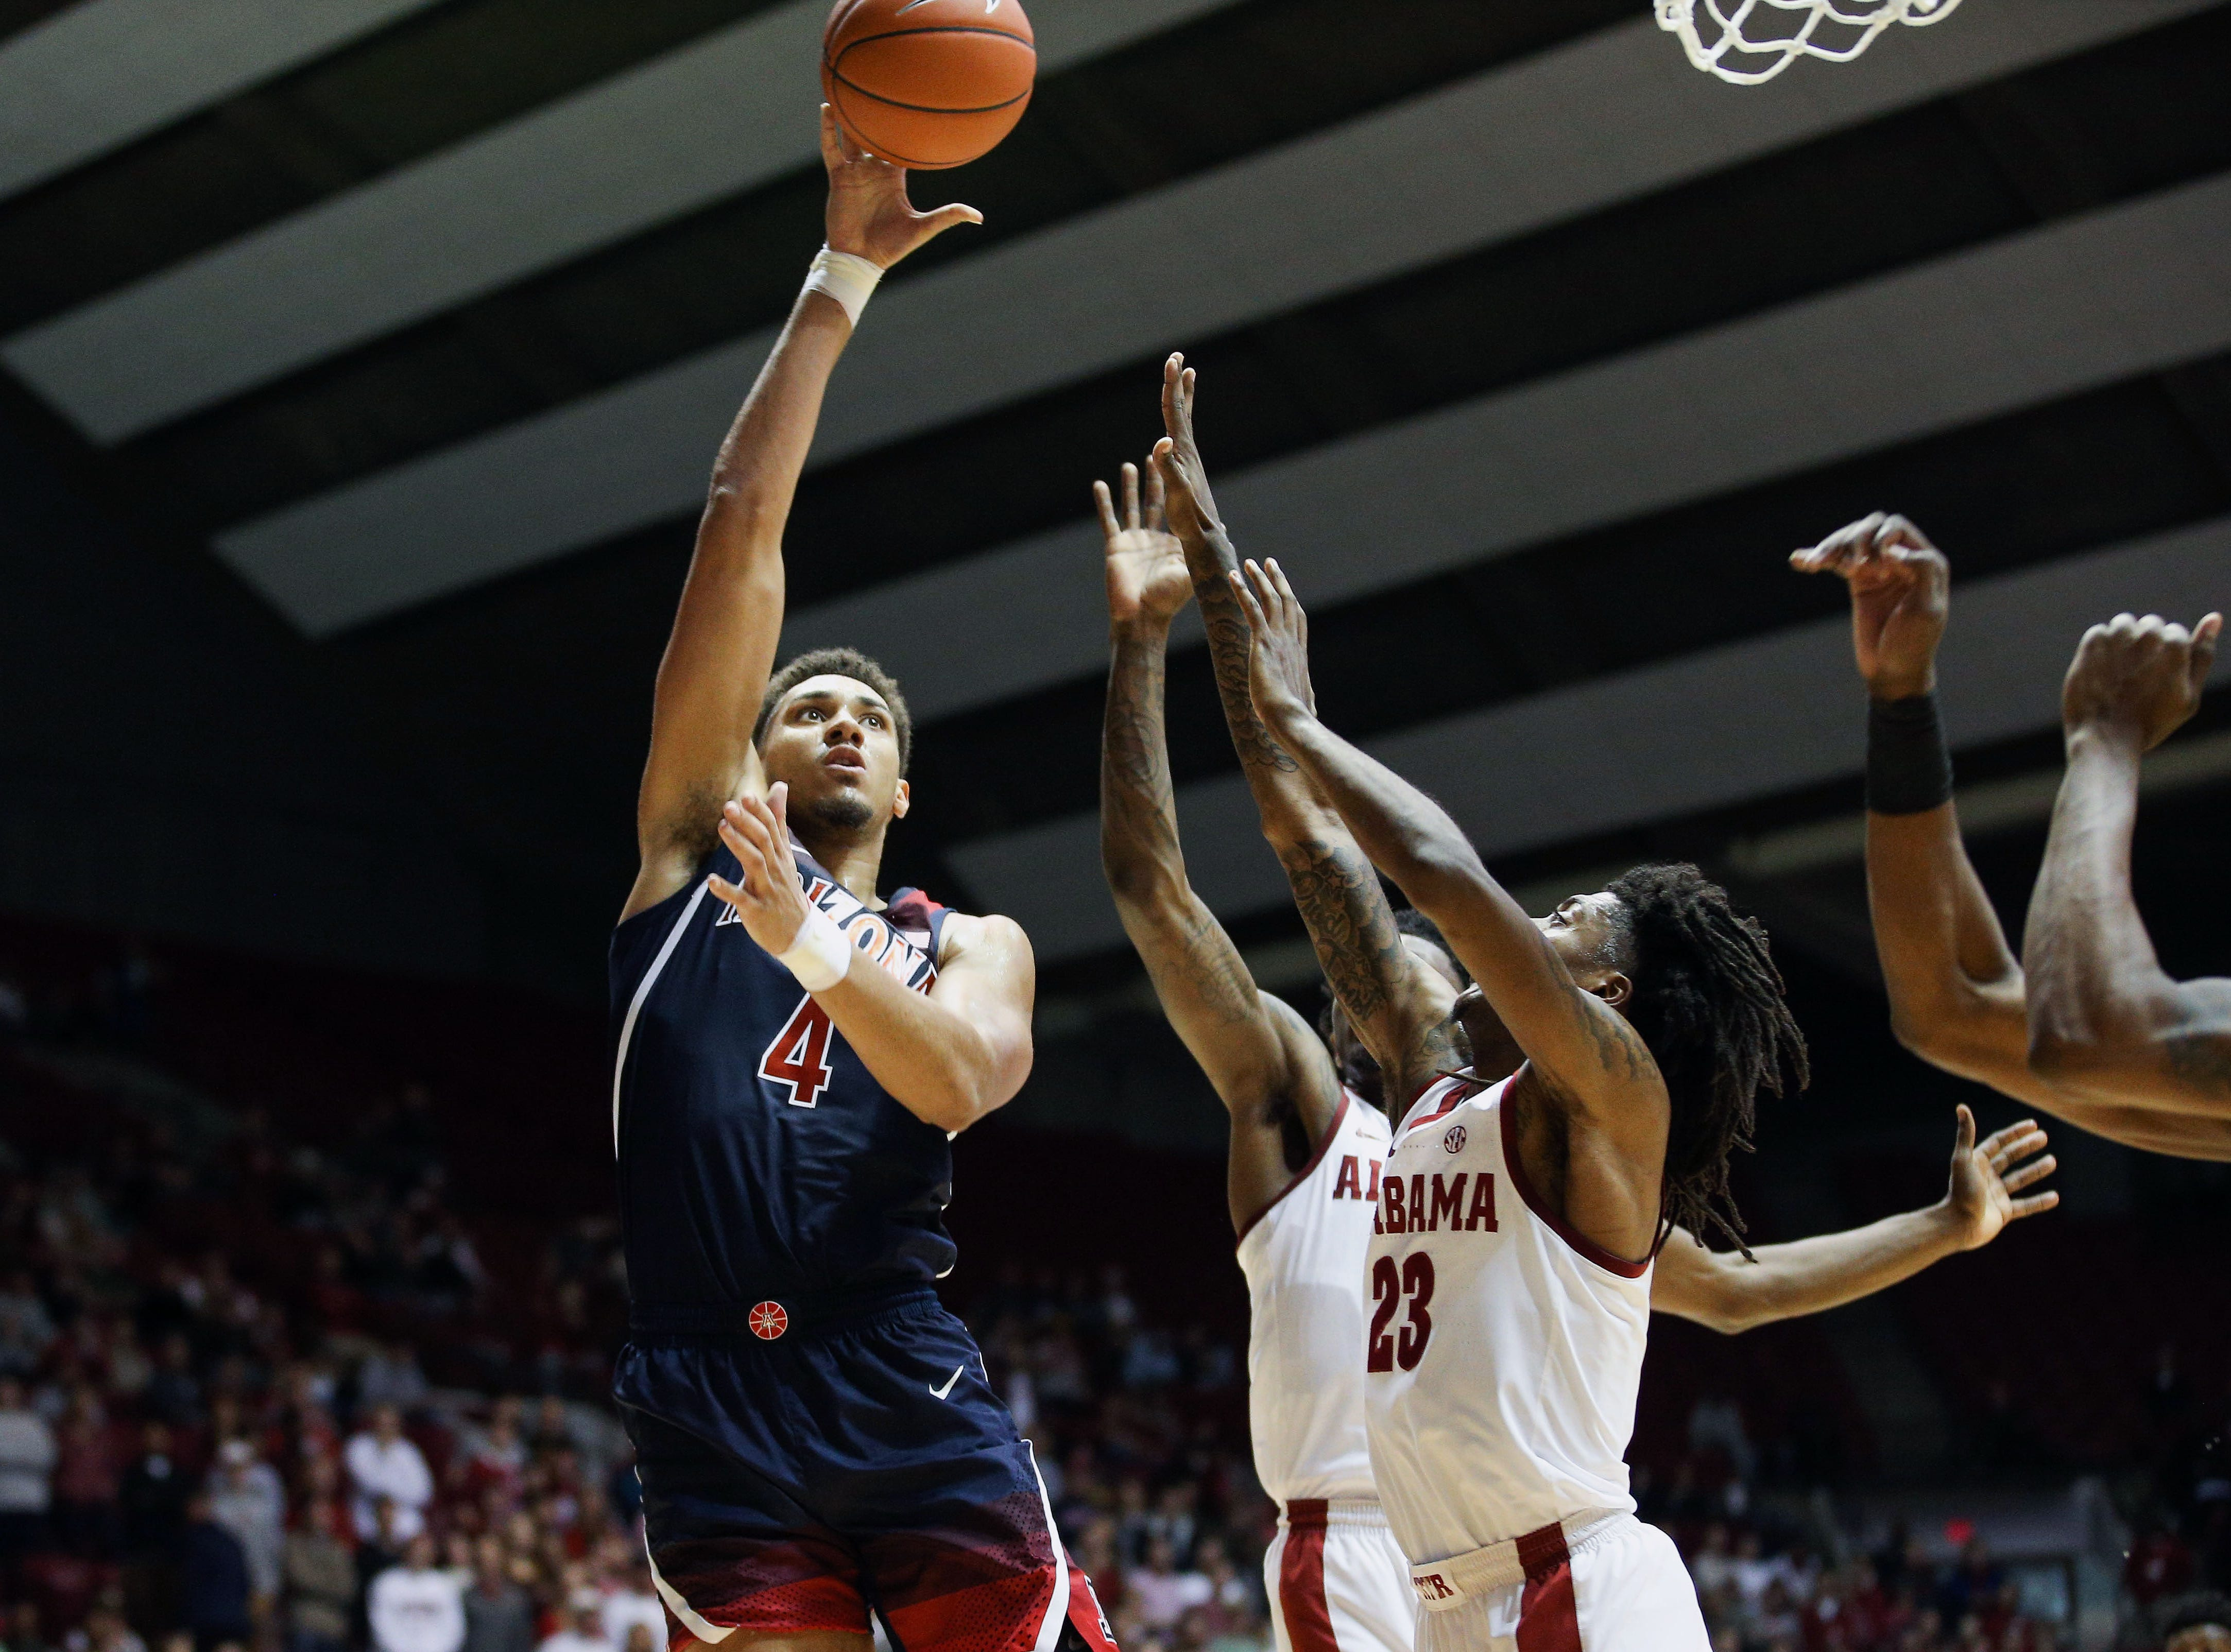 Dec 9, 2018; Tuscaloosa, AL, USA; Arizona Wildcats center Chase Jeter (4) shoots over Alabama Crimson Tide guard John Petty (23) during the first half at Coleman Coliseum. Mandatory Credit: Marvin Gentry-USA TODAY Sports